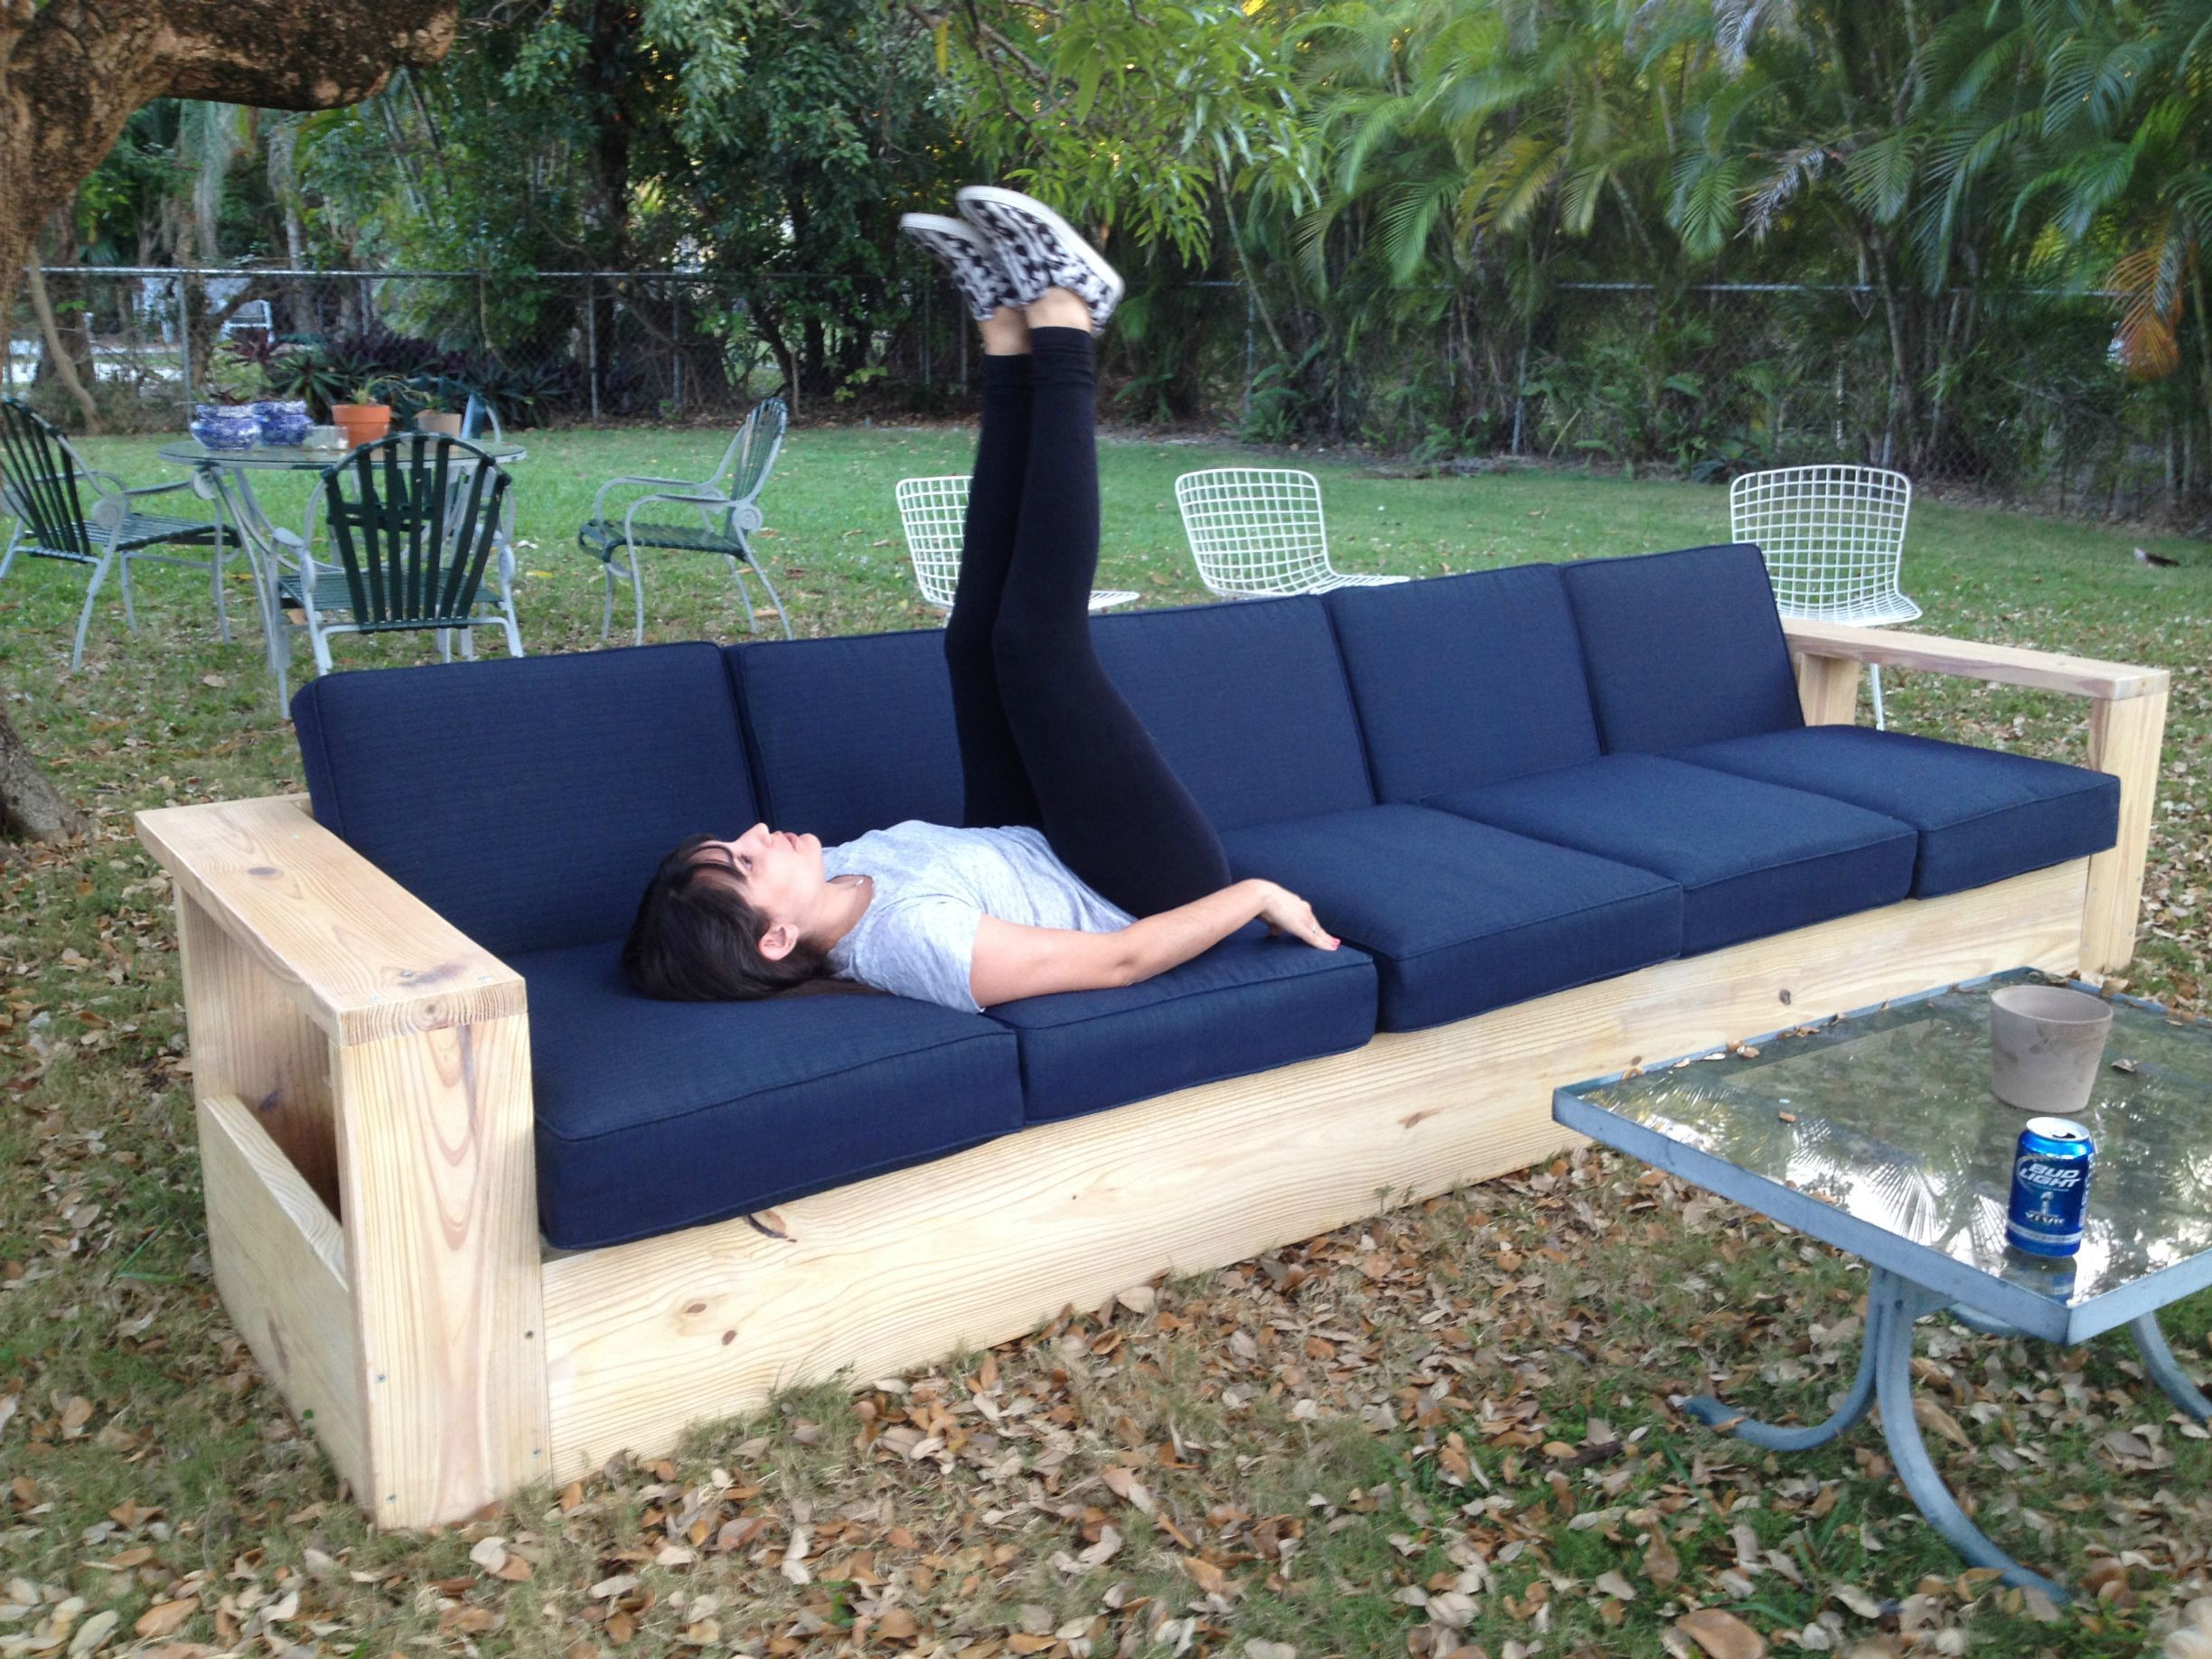 Sofa Setup Ideas I Built A Very Long Outdoor Sofa Out Of Wood First